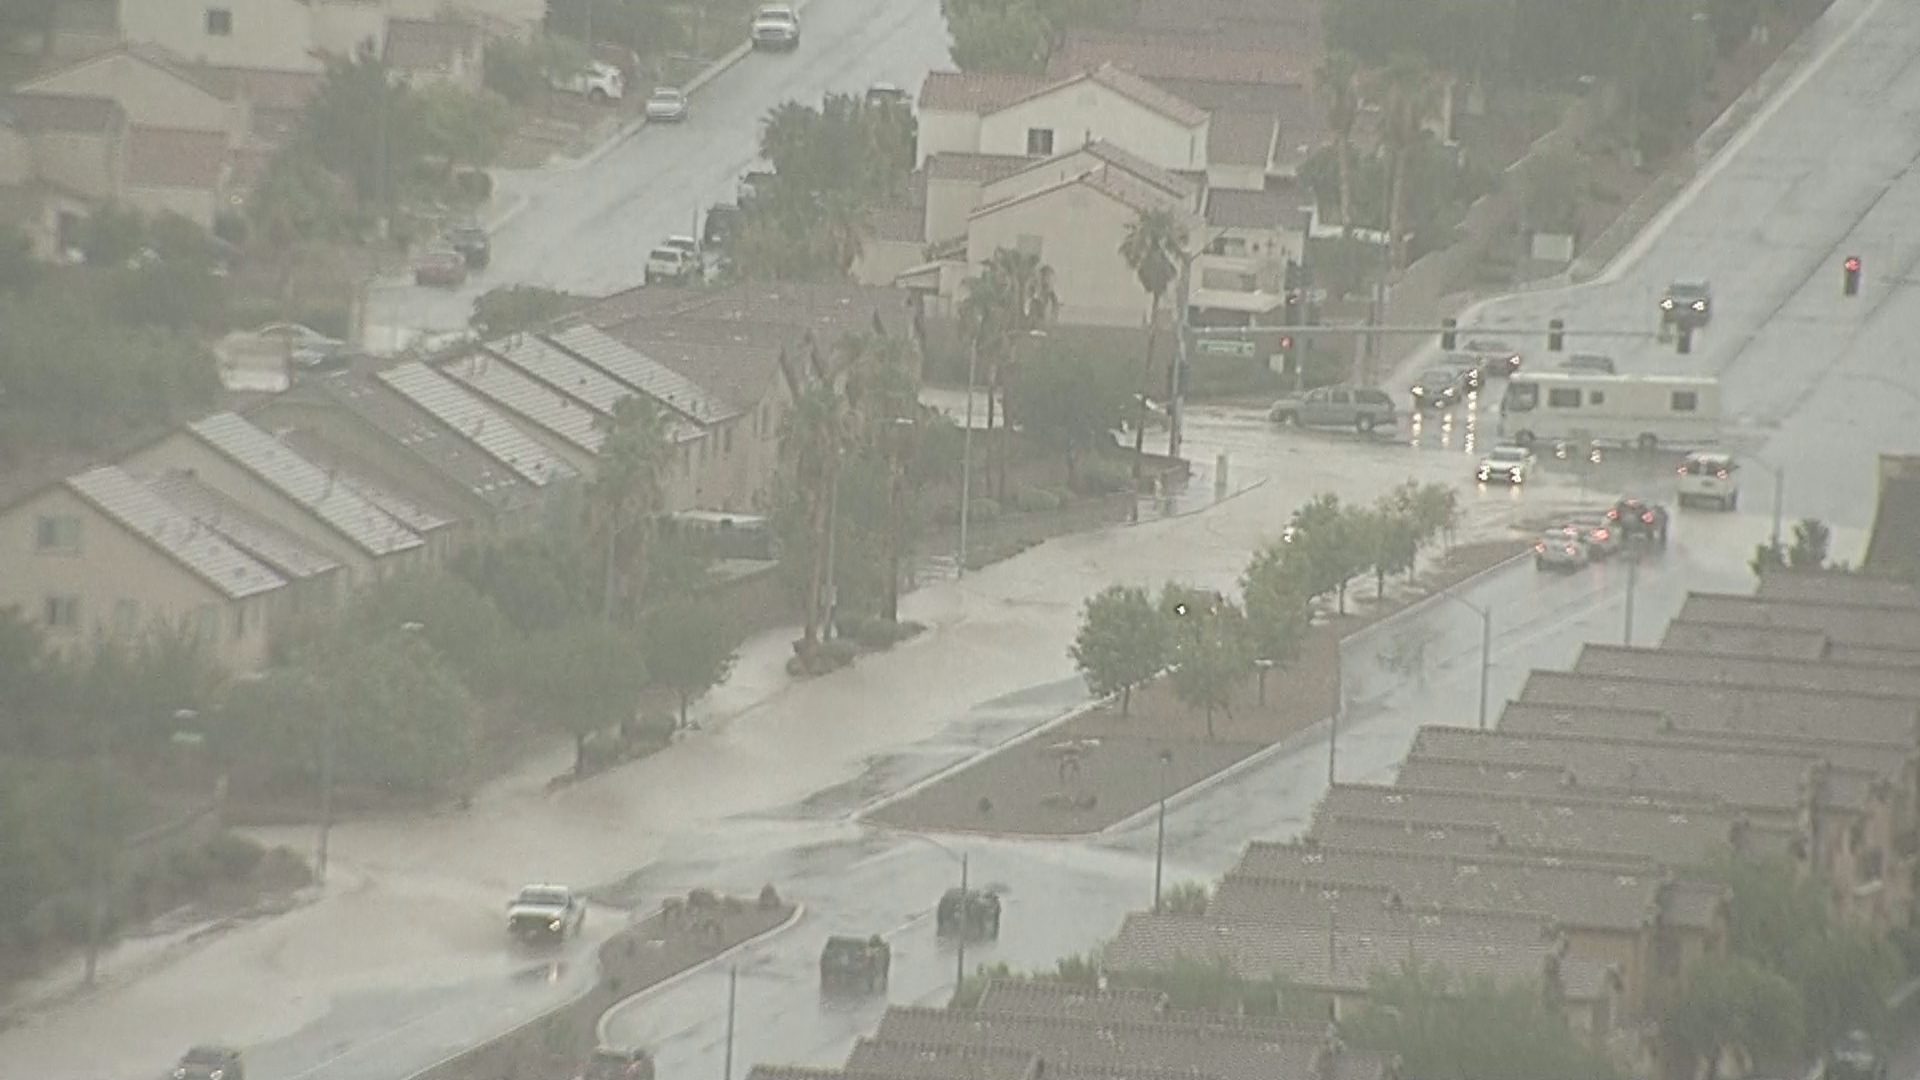 Residents deal with flooding Tuesday, July 25, 2017, in the northwest Las Vegas valley. (Tom Hawley/KSNV)